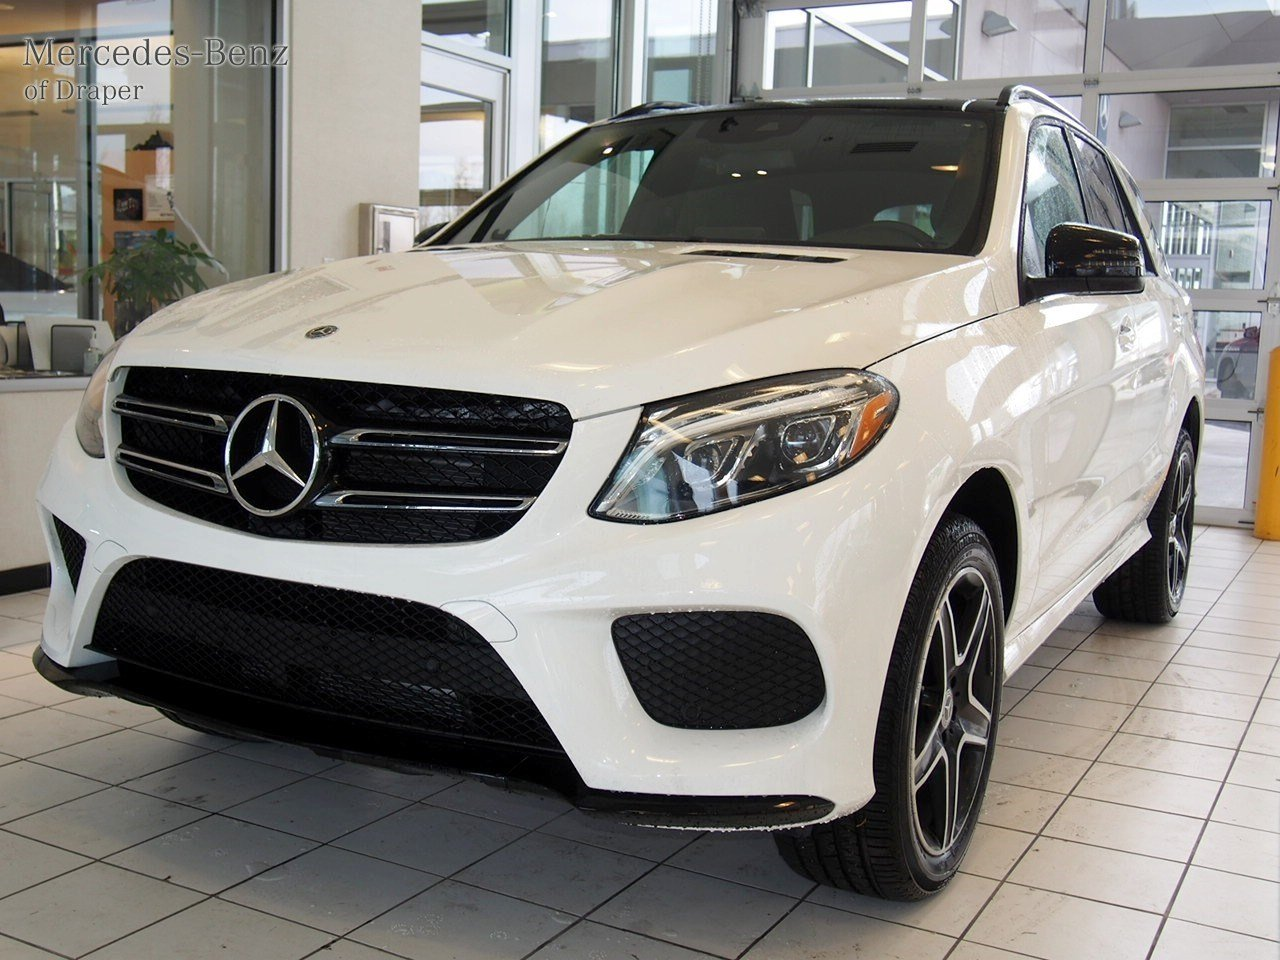 quality view vehicles vehicle width status h height x err gle inventory paint resp sa brand suv iris w mbusa pov benz transparent bkgnd mb client class model y mercedes